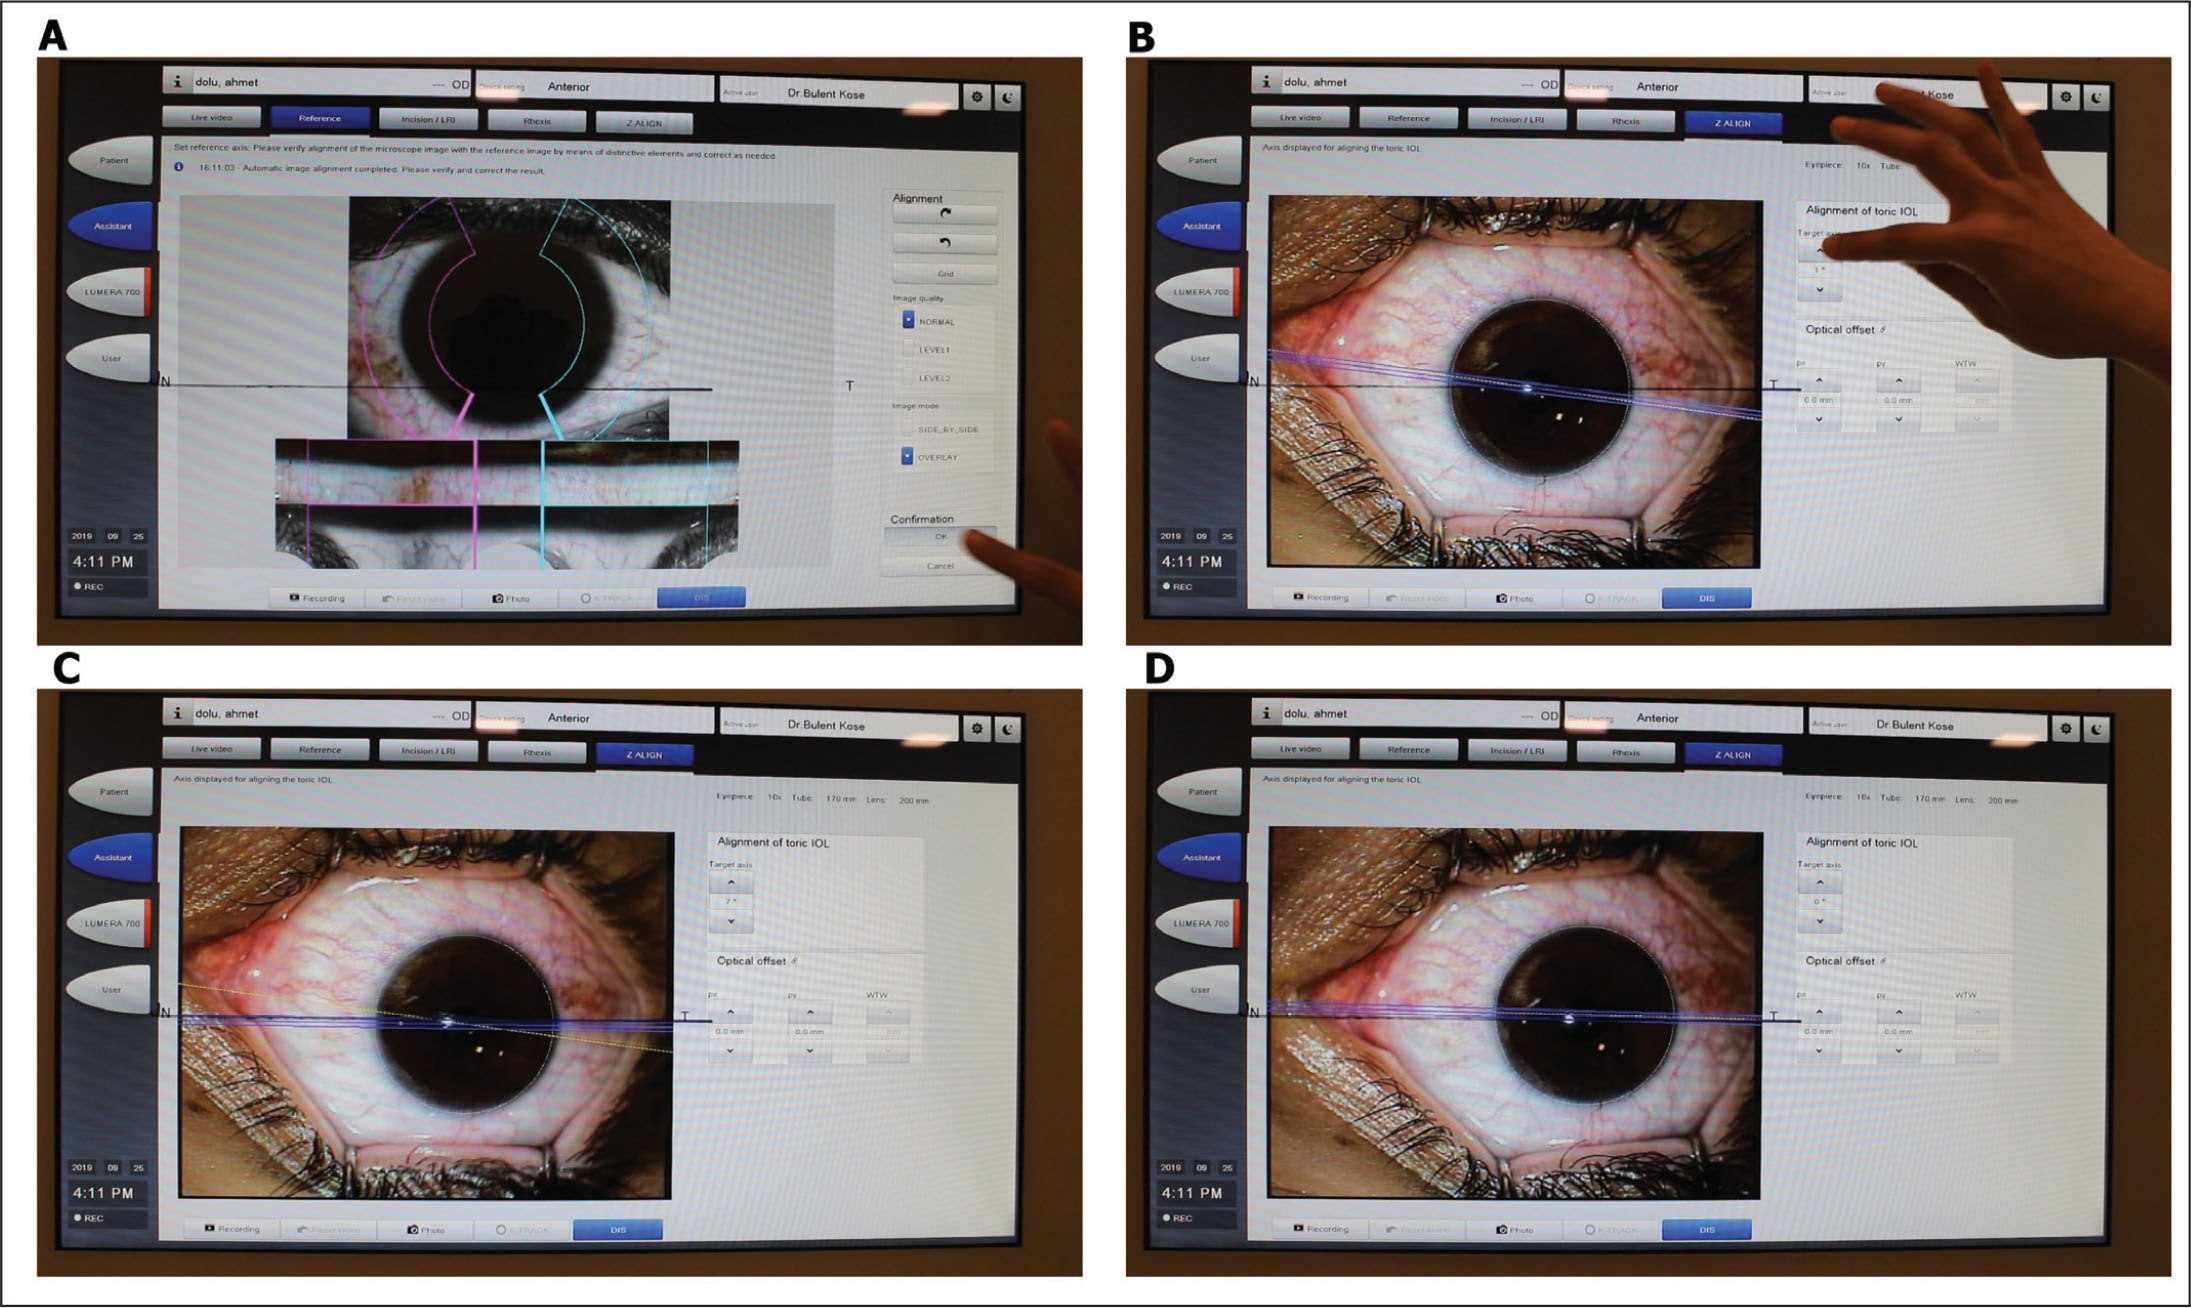 Cyclotorsion compensation with the Callisto eye system (Carl Zeiss Meditec AG, Jena, Germany). A black horizontal line was previously drawn with a marker pen on the center of the live stream window. (A) Captured image and the previously registered IOLMaster 700 (Carl Zeiss Meditec AG) image were overlapped in a translucent view and confirmation button was activated manually on the Callisto eye screen. (B) A yellow line appeared on the screen and represented the registered 0–180 axis of the patient. The black line represented the 0–180 axis of the VisuMax laser treatment (Carl Zeiss Meditec AG). Z-align function was activated and rotated to measure the amount of angle of cyclotorsion. (C) The Z-align was overlapped with black line and cyclotorsion angle was determined. (D) The patient's head was rotated until the black and yellow lines overlapped. The patient was instructed to remain still during the small incision lenticule extraction procedure.